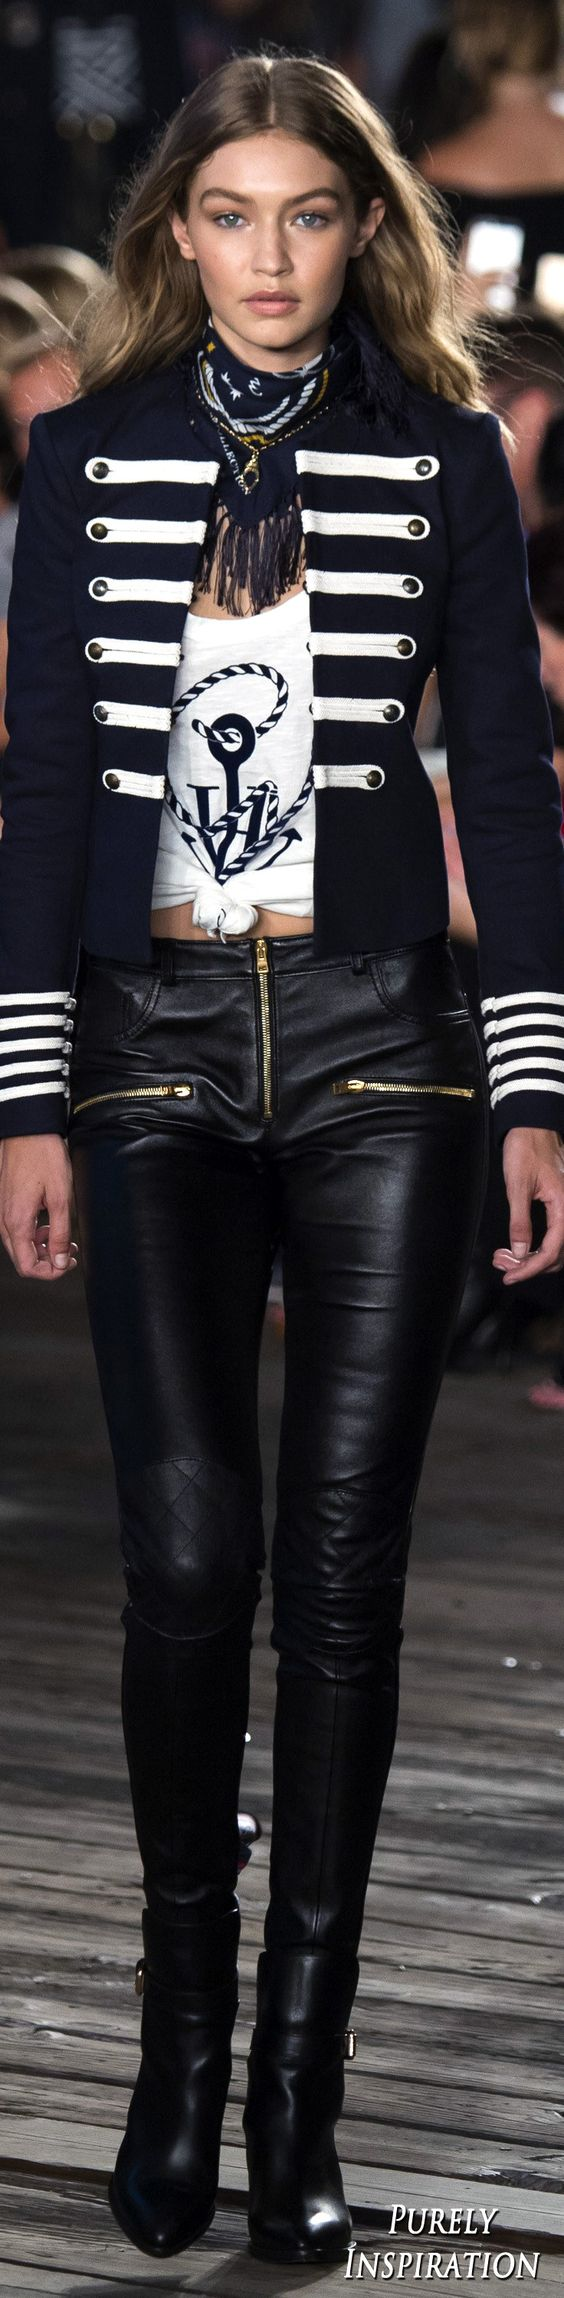 Tommy Hilfiger FW2016 Womens Fashion RTW | Purely Inspiration